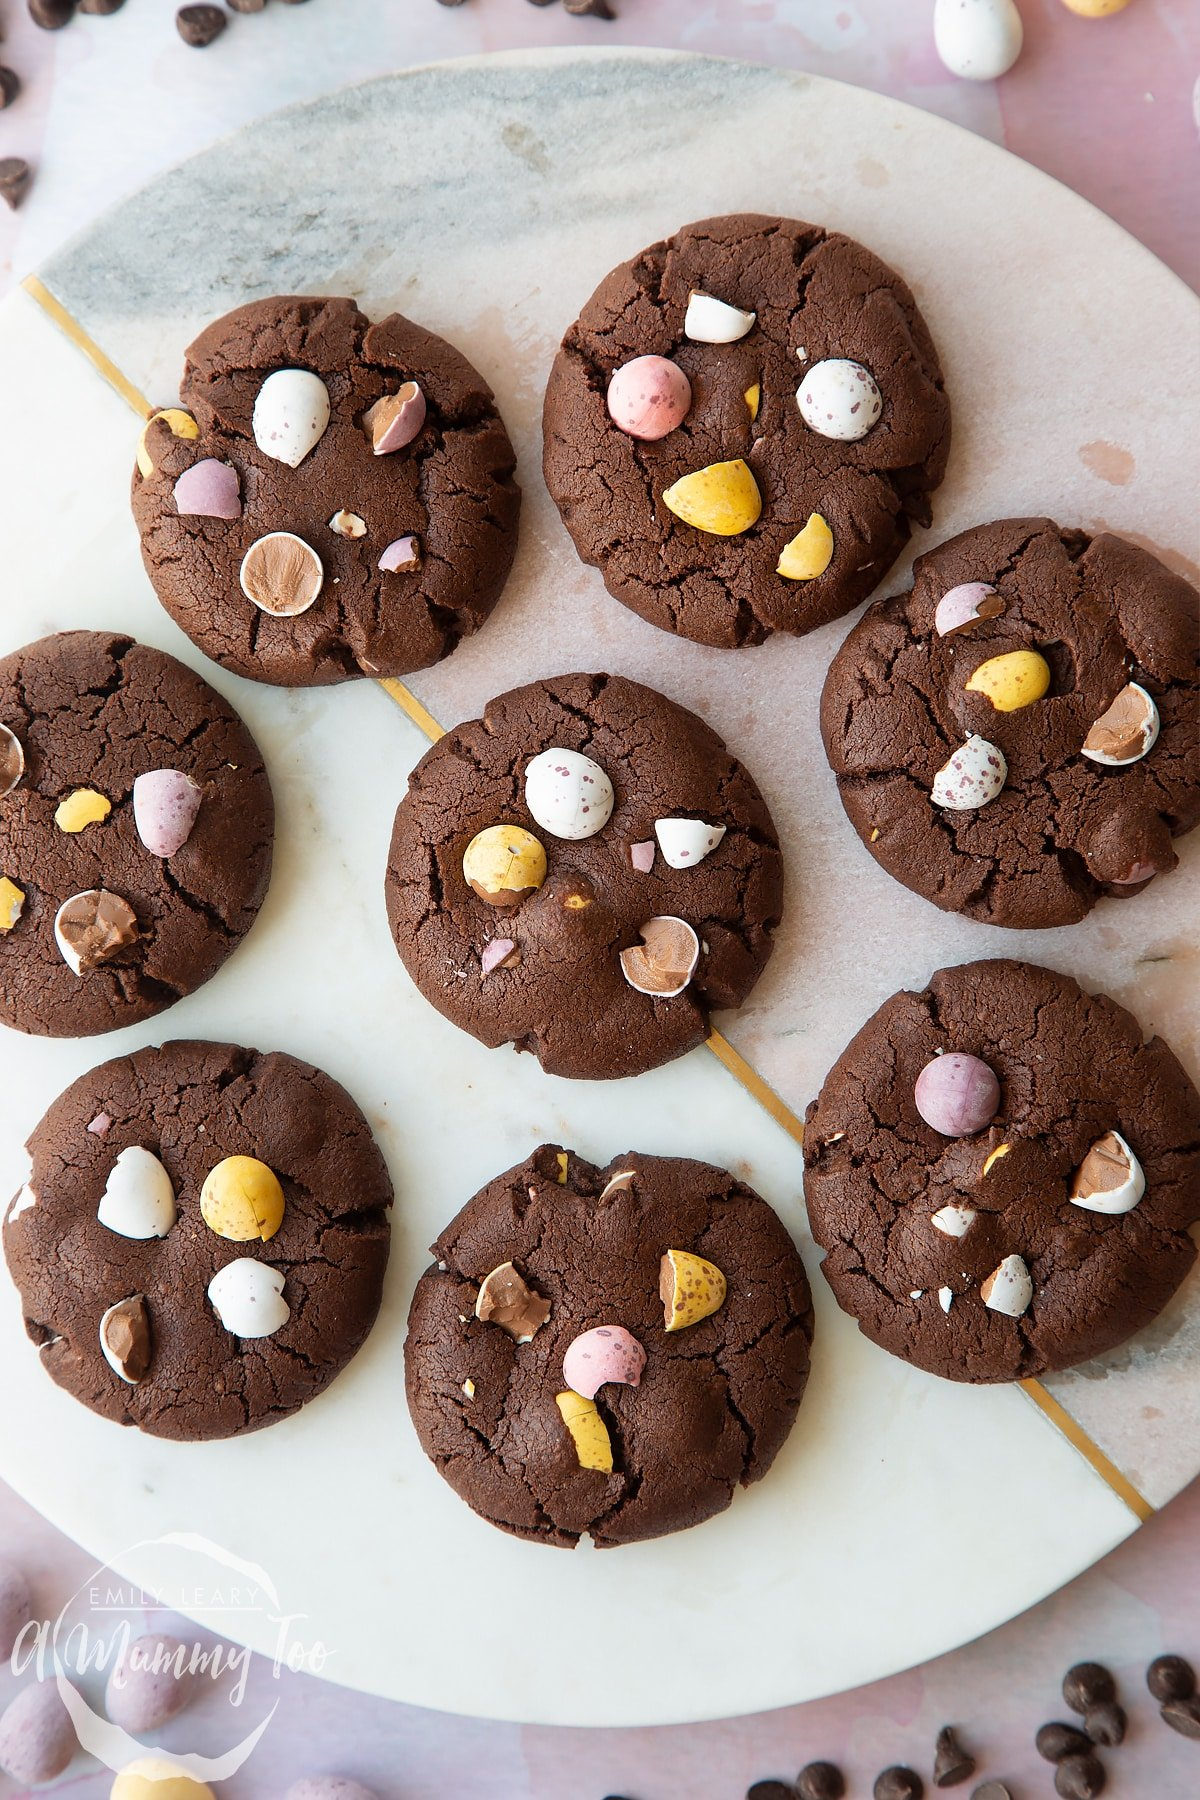 Chocolate Easter cookies arranged on a round marble board. The cookies are chocolate brown and topped with Mini Eggs.